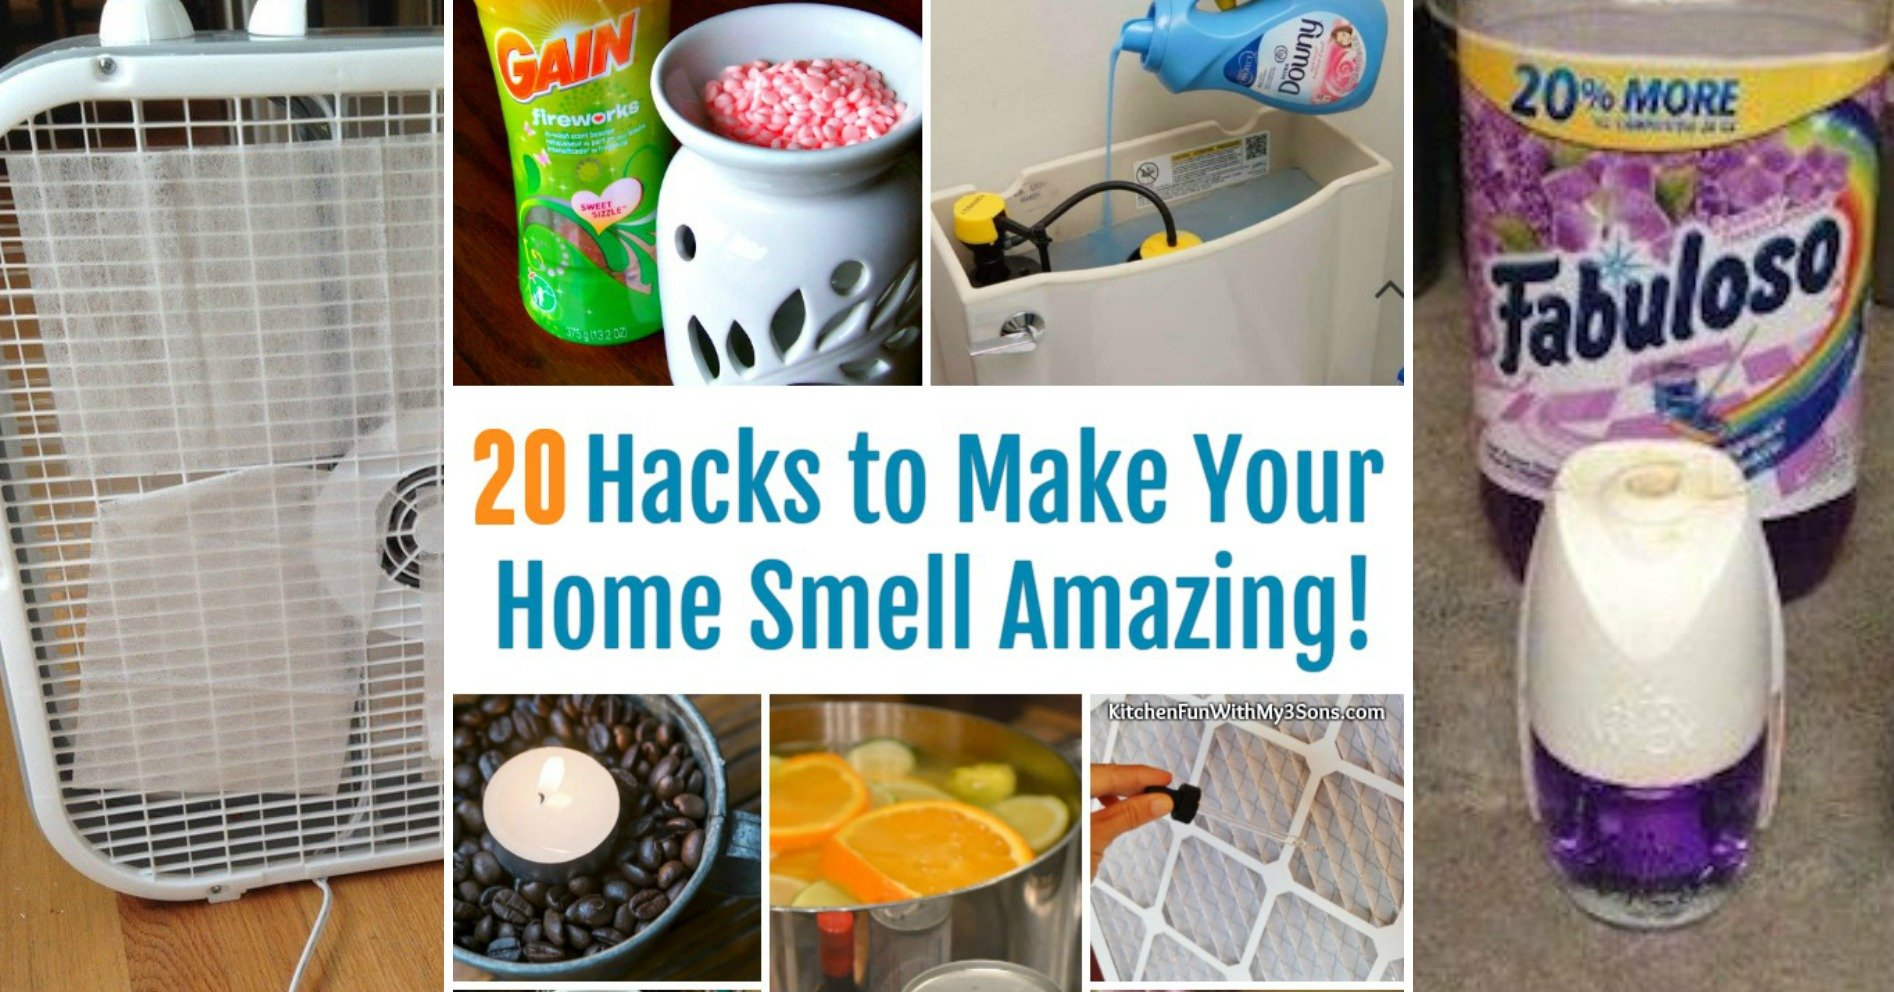 How To Make Your House Smell Good With 20 Easy Hacks Kitchen Fun With My 3 Sons